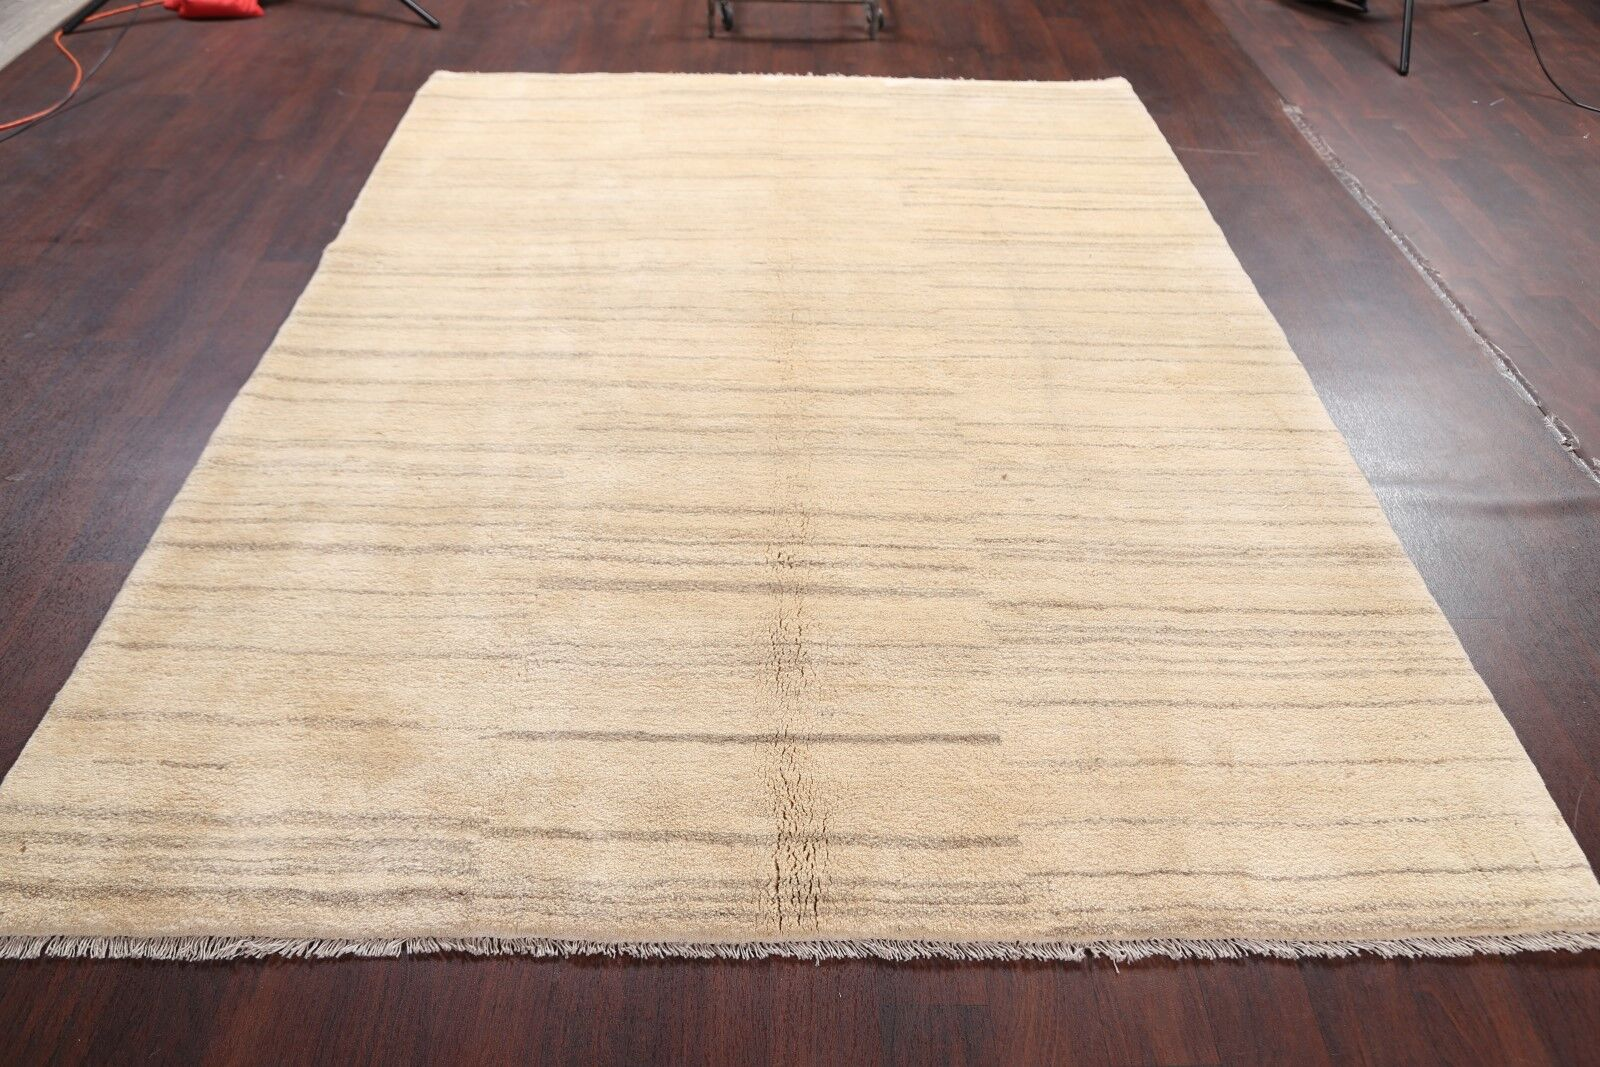 One-of-a-Kind Classical Qashqai Shiraz Persian Traditional Gabbeh Hand-Knotted 6'7